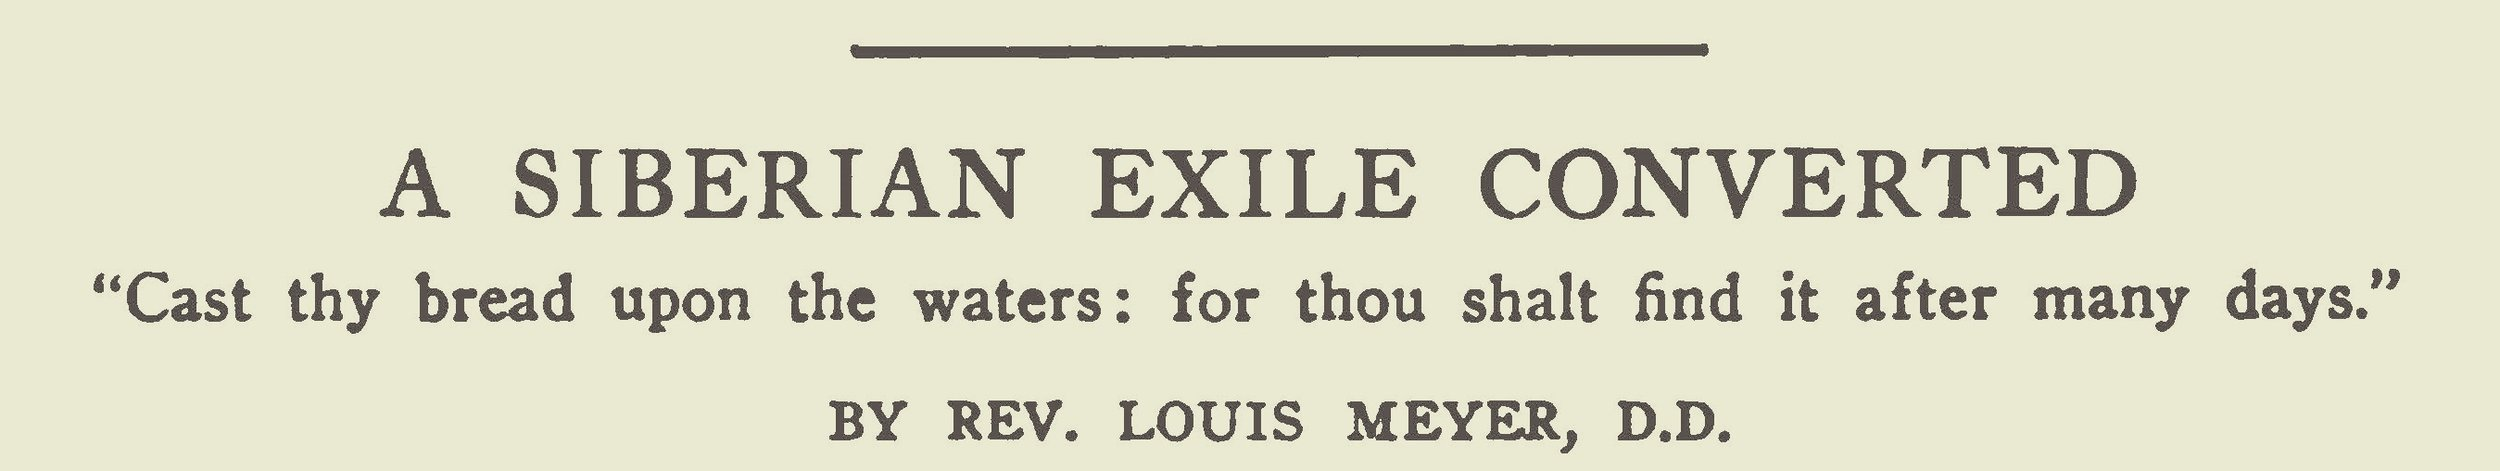 Meyer, Louis, A Siberian Exile Converted Title Page.jpg